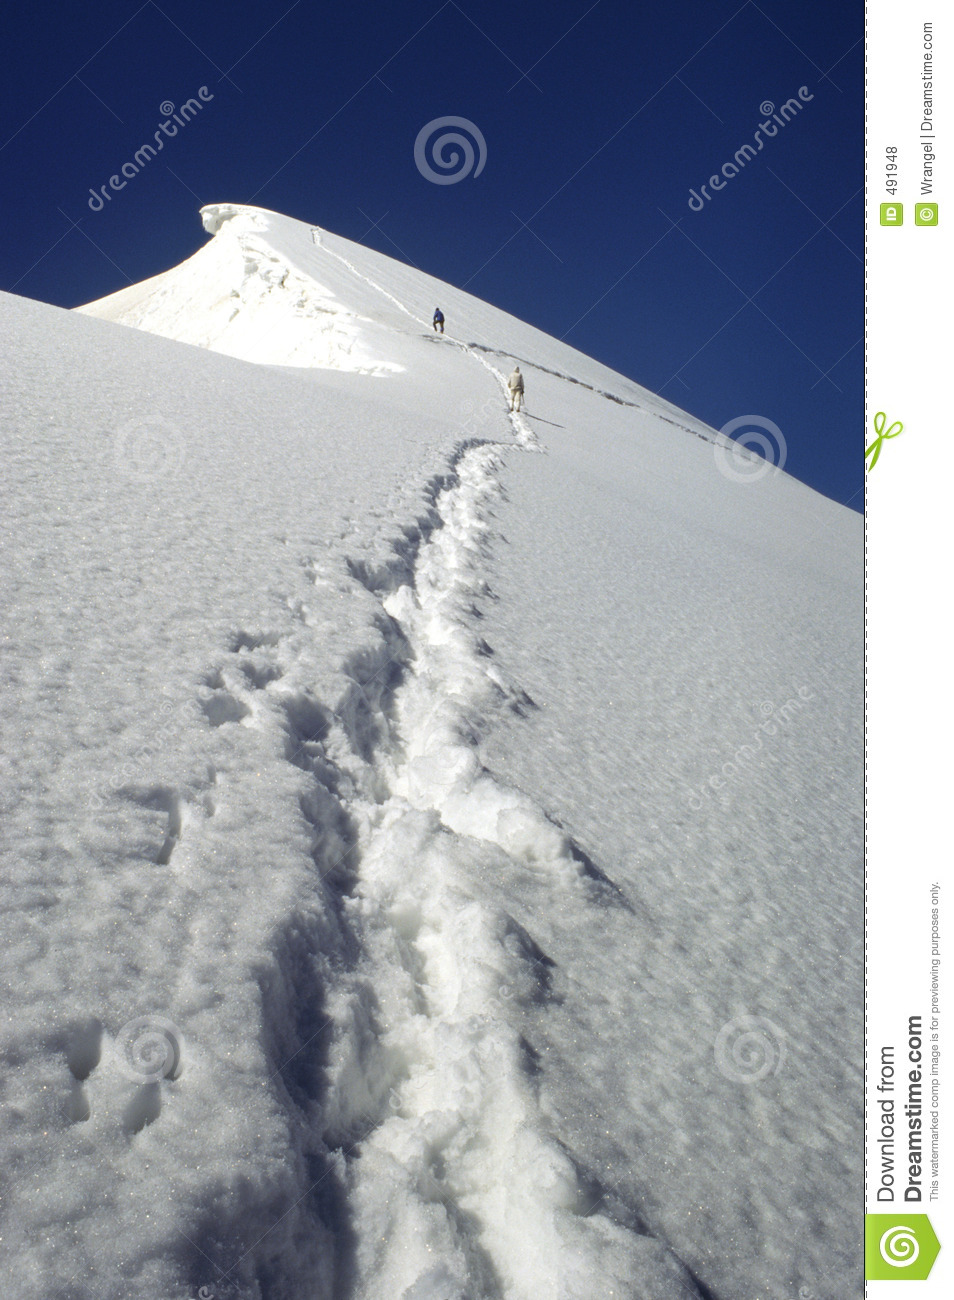 Download Mountaineers Climbing Up To The Summit Stock Photo - Image of alpinist, path: 491948